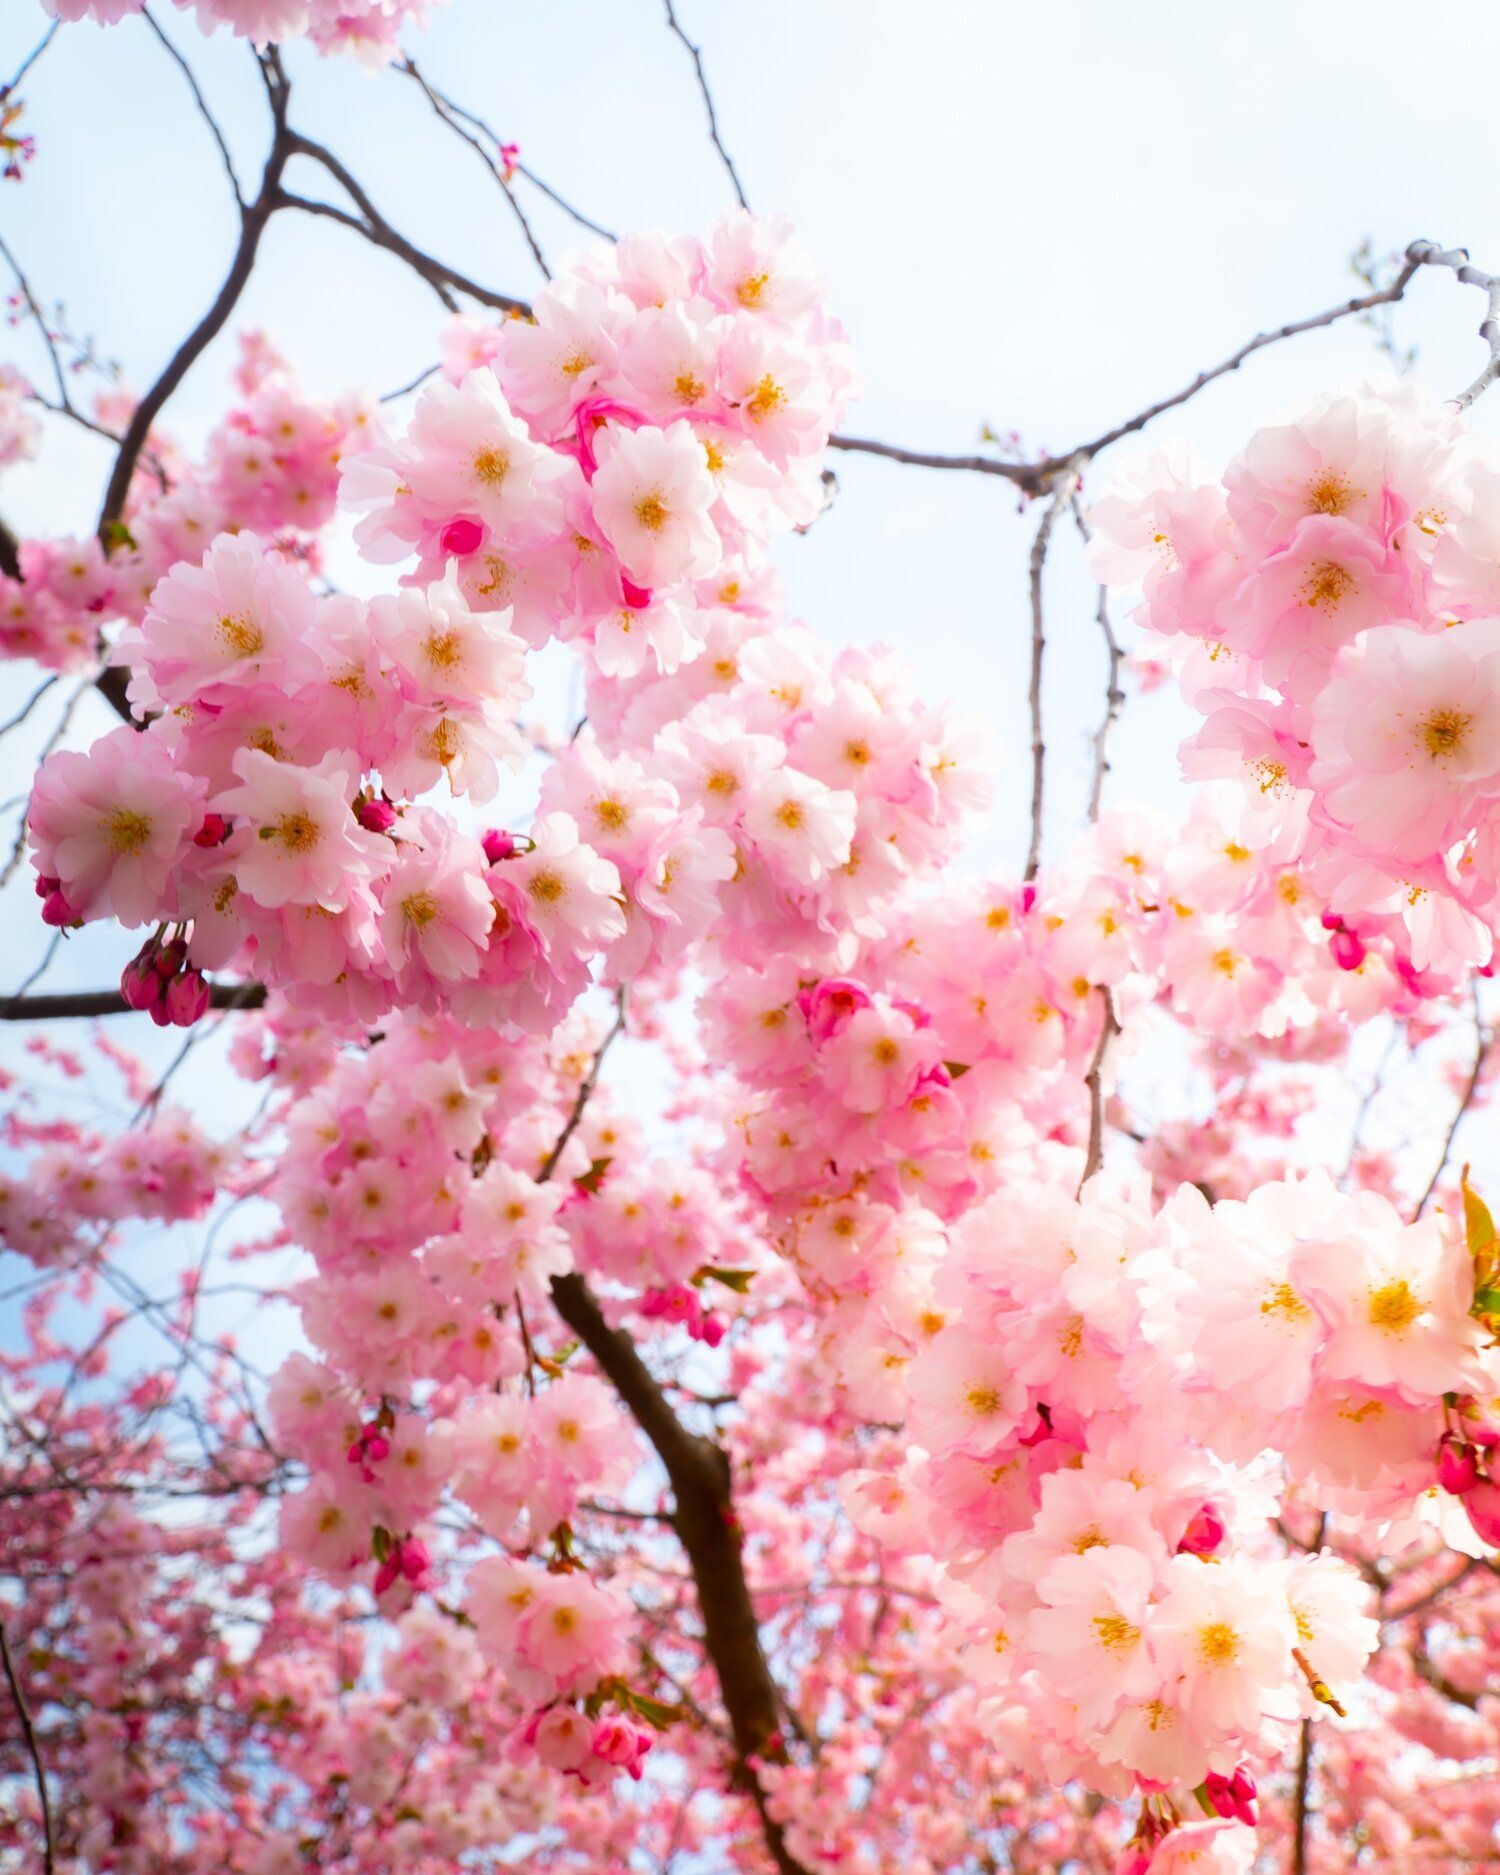 Cherry Blossom Stunning Photos And Mood Setting Artworks By Marcus Adriansson Cherry Blossom Blossom Japanese Cherry Blossom